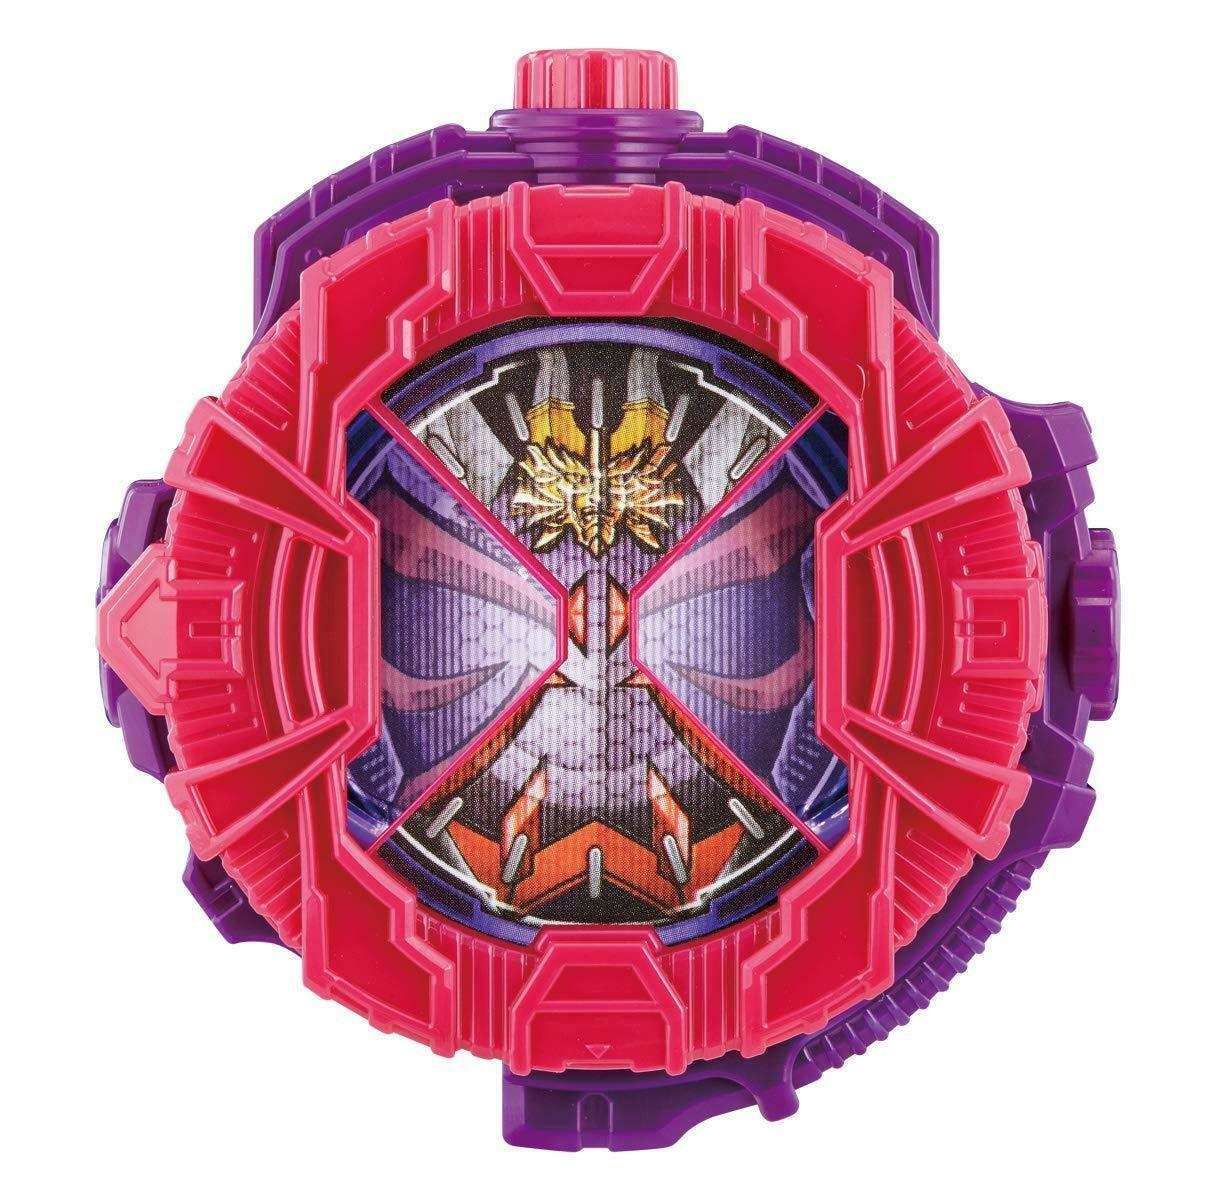 Kamen Rider Zi-O DX Ride Watch Dizer Dizer Dizer Den-O Kiva Blade Kabuto Hibiki Ride Watch f72018